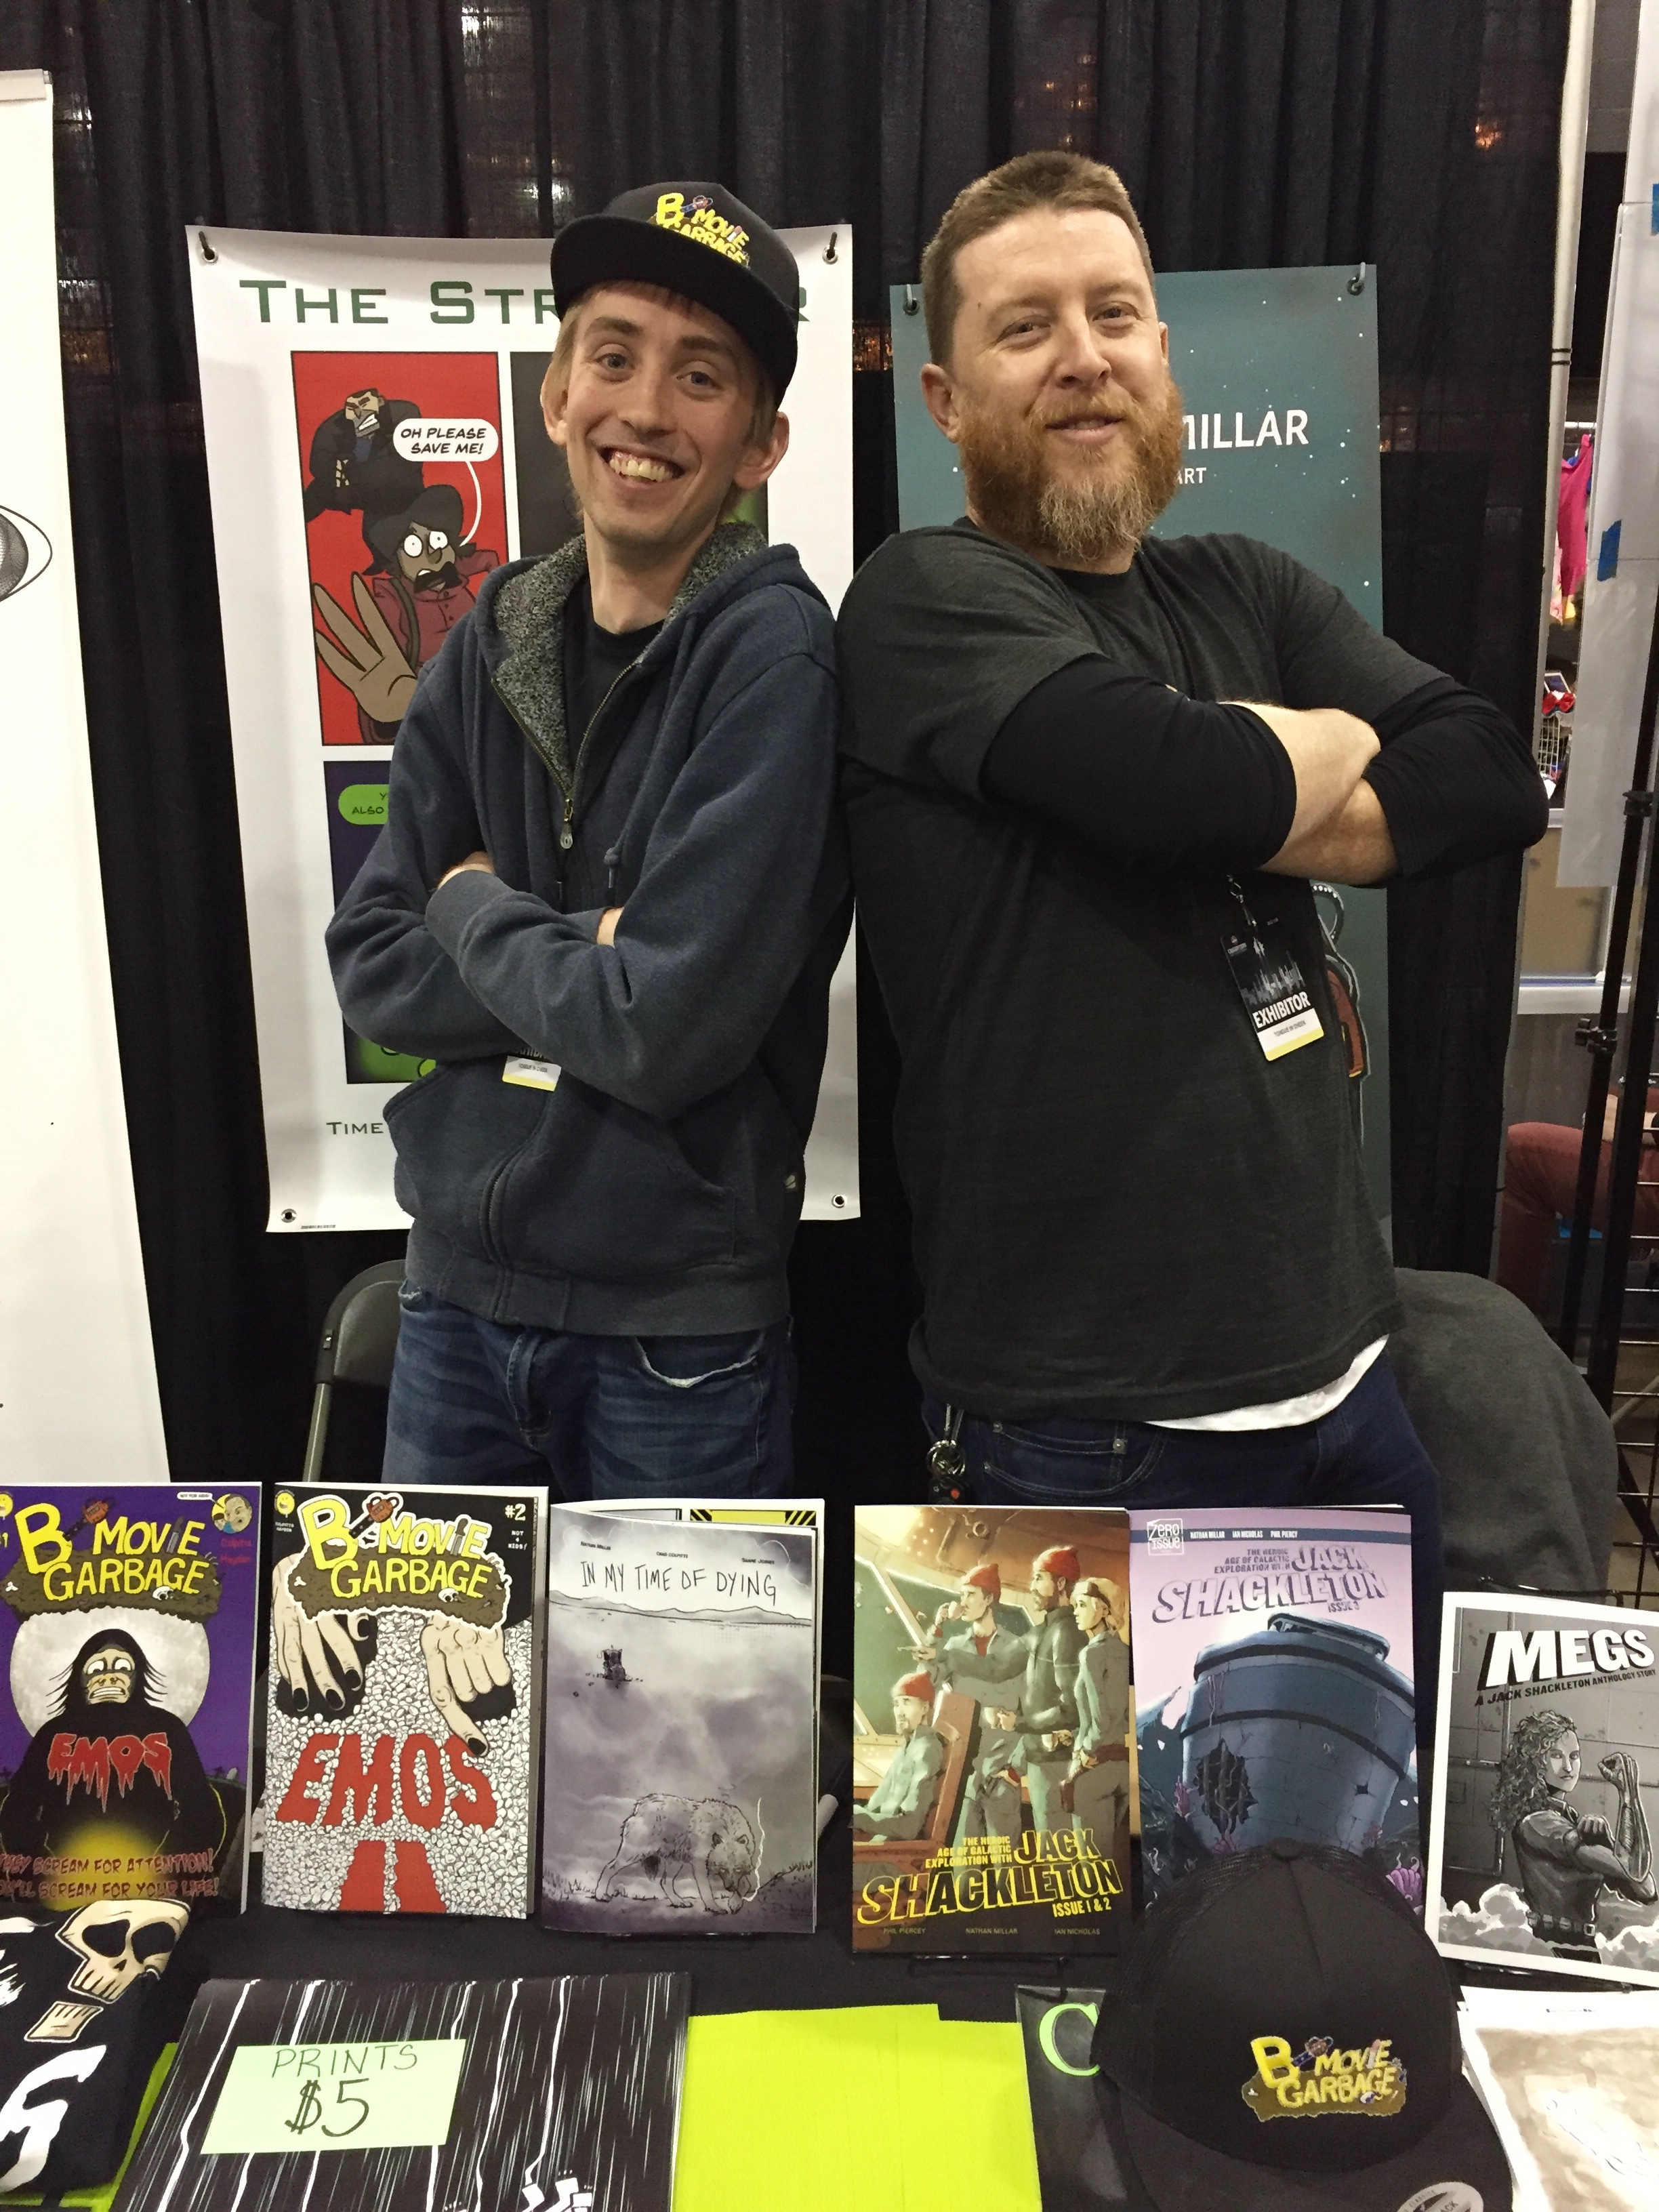 Chad Colpitts (left) and Nathan Millar at the 2019 Calgary Expo  ( Photo credit: Chris Doucher/GeekNerdNet.com )